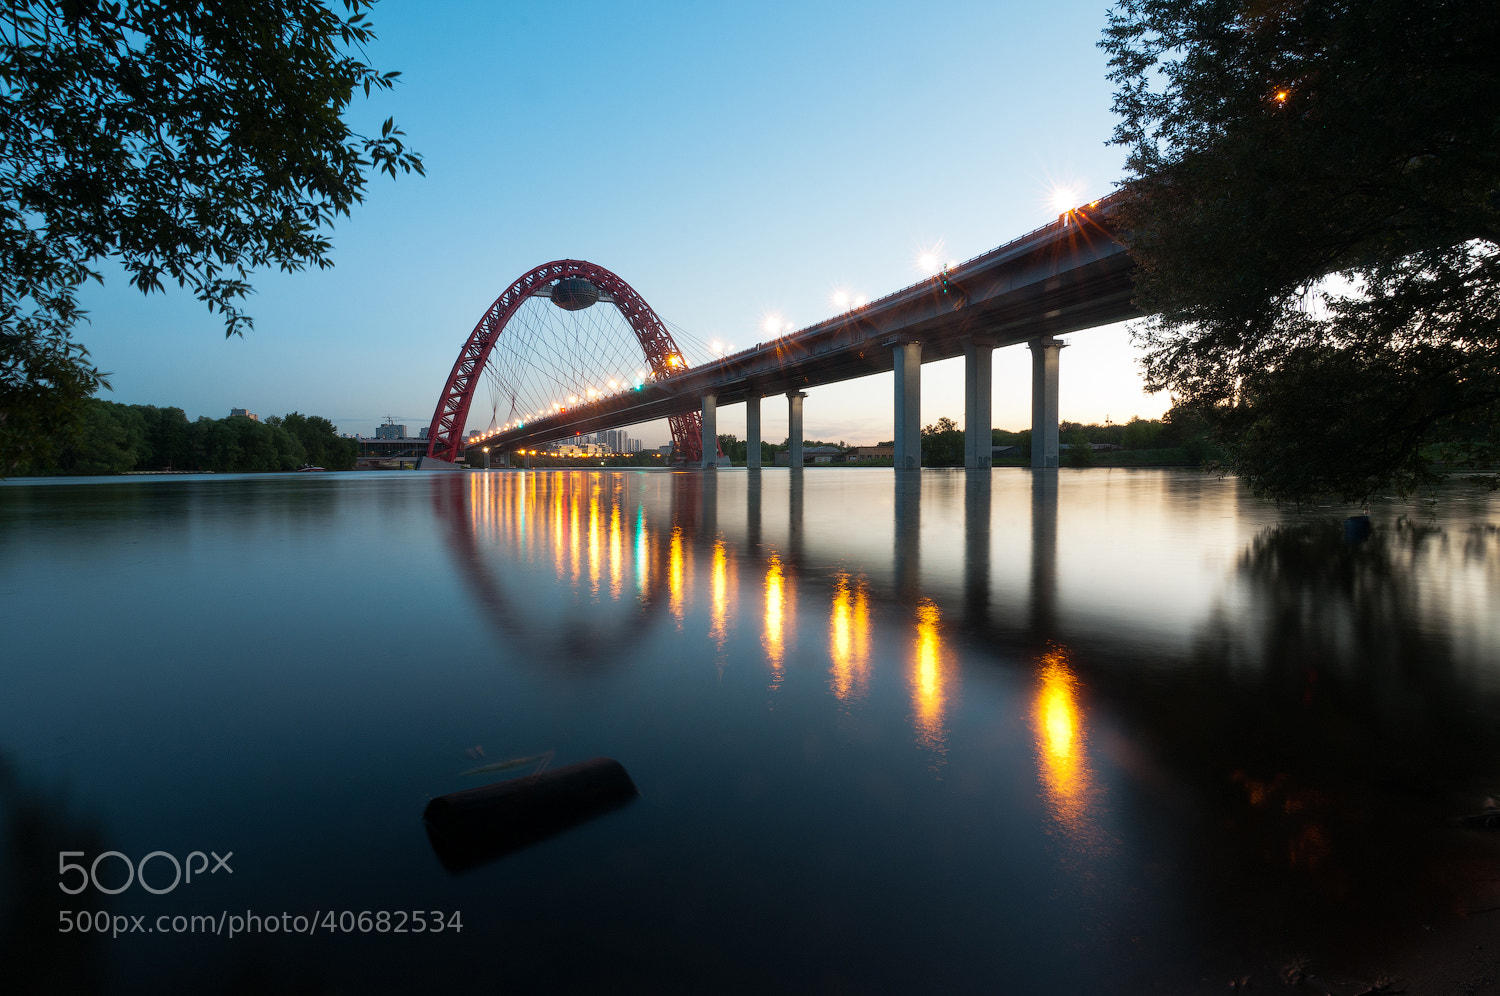 Photograph Untitled by Alexei Zaripov on 500px